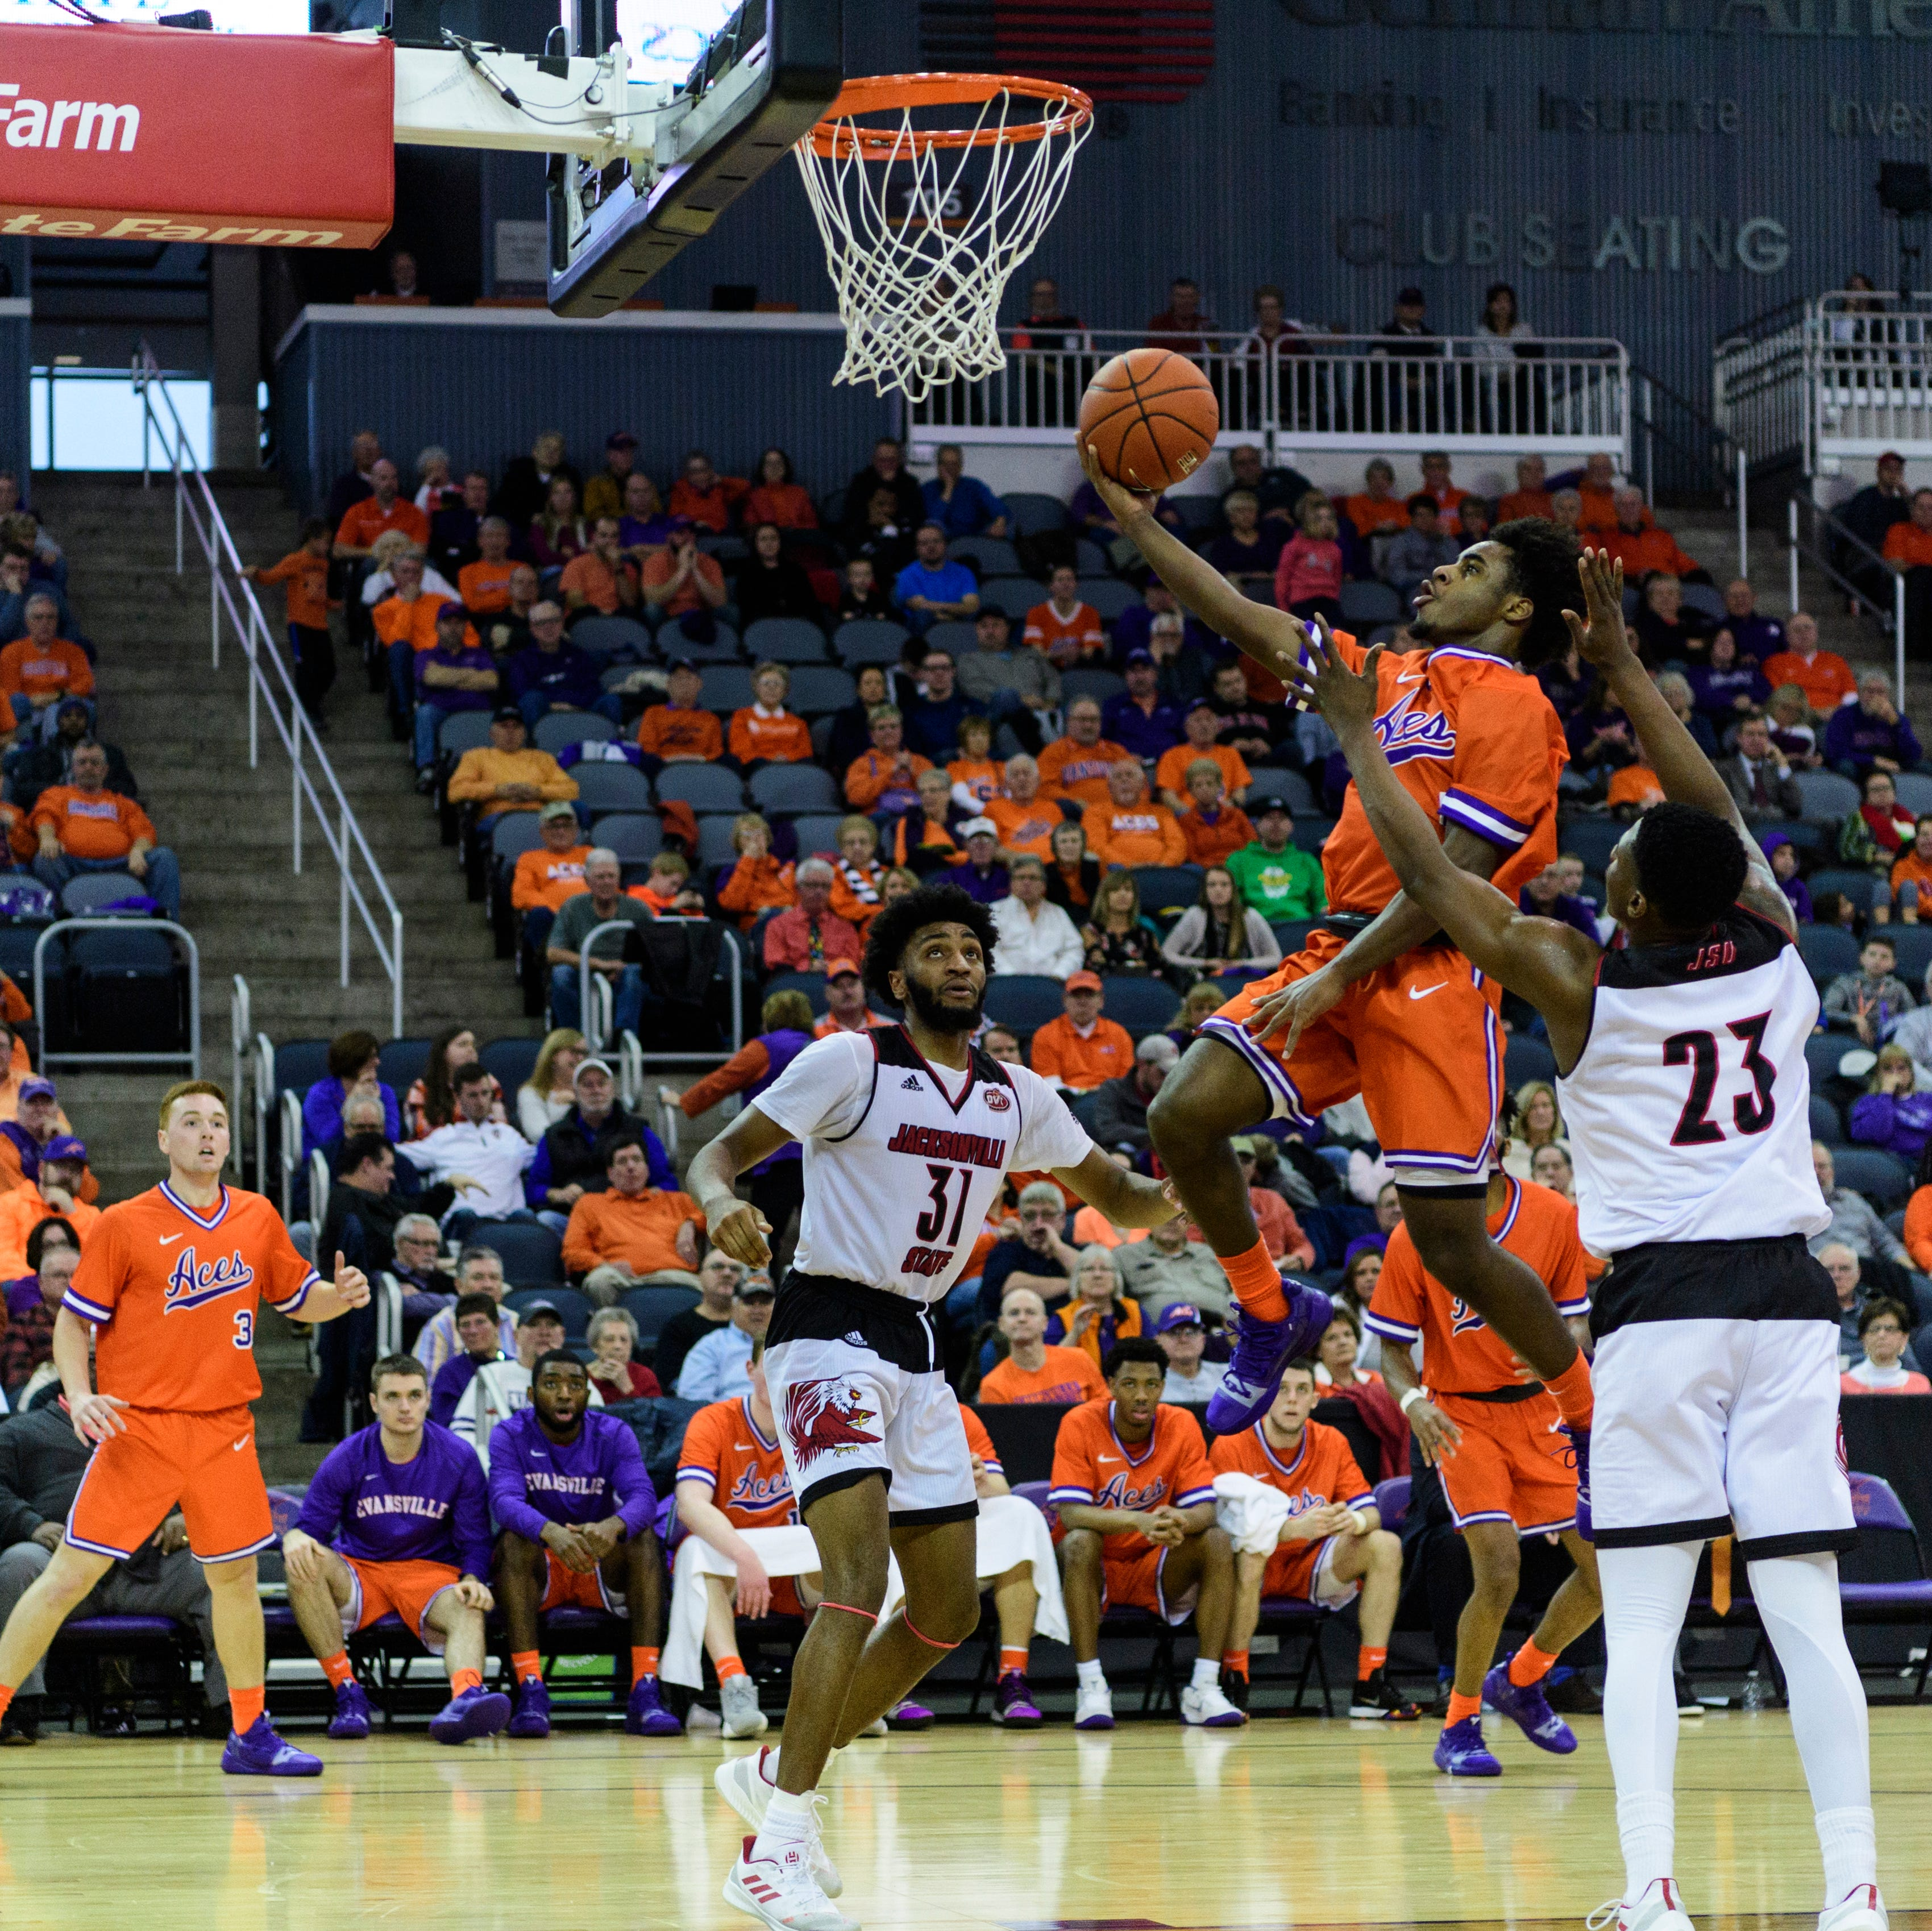 Shooting woes continue, but Aces played out of character in loss to Jacksonville State